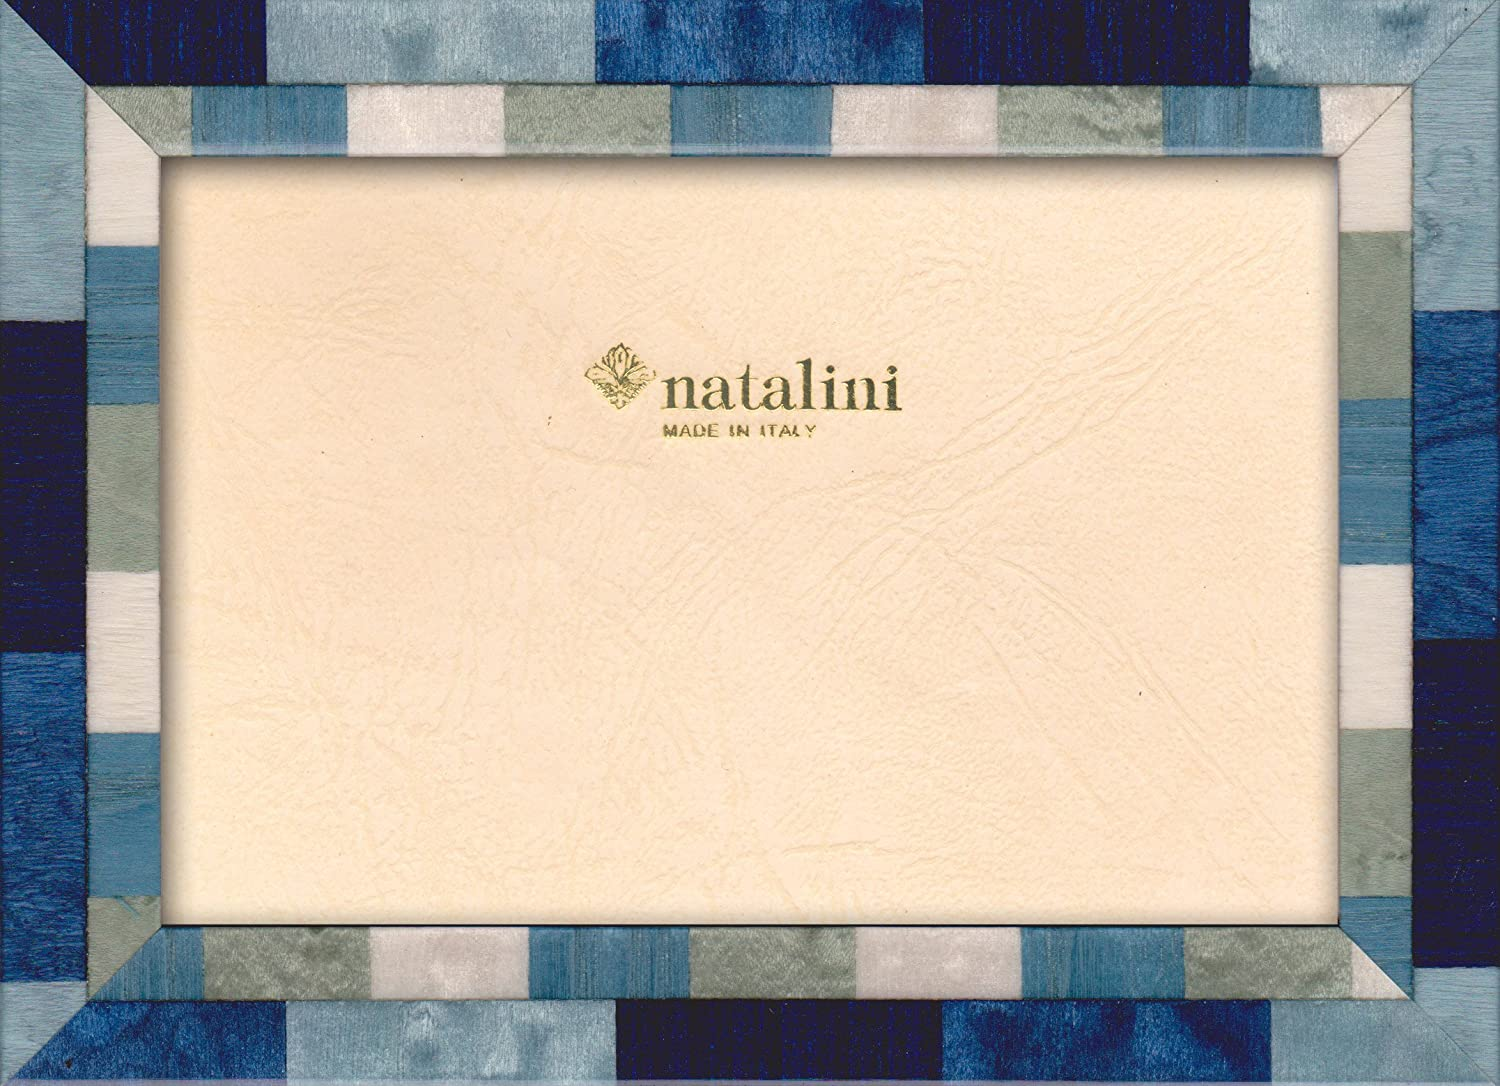 Natalini Marquetry Photo Frame Made in Italy Tulipwood 5X 7 Oak